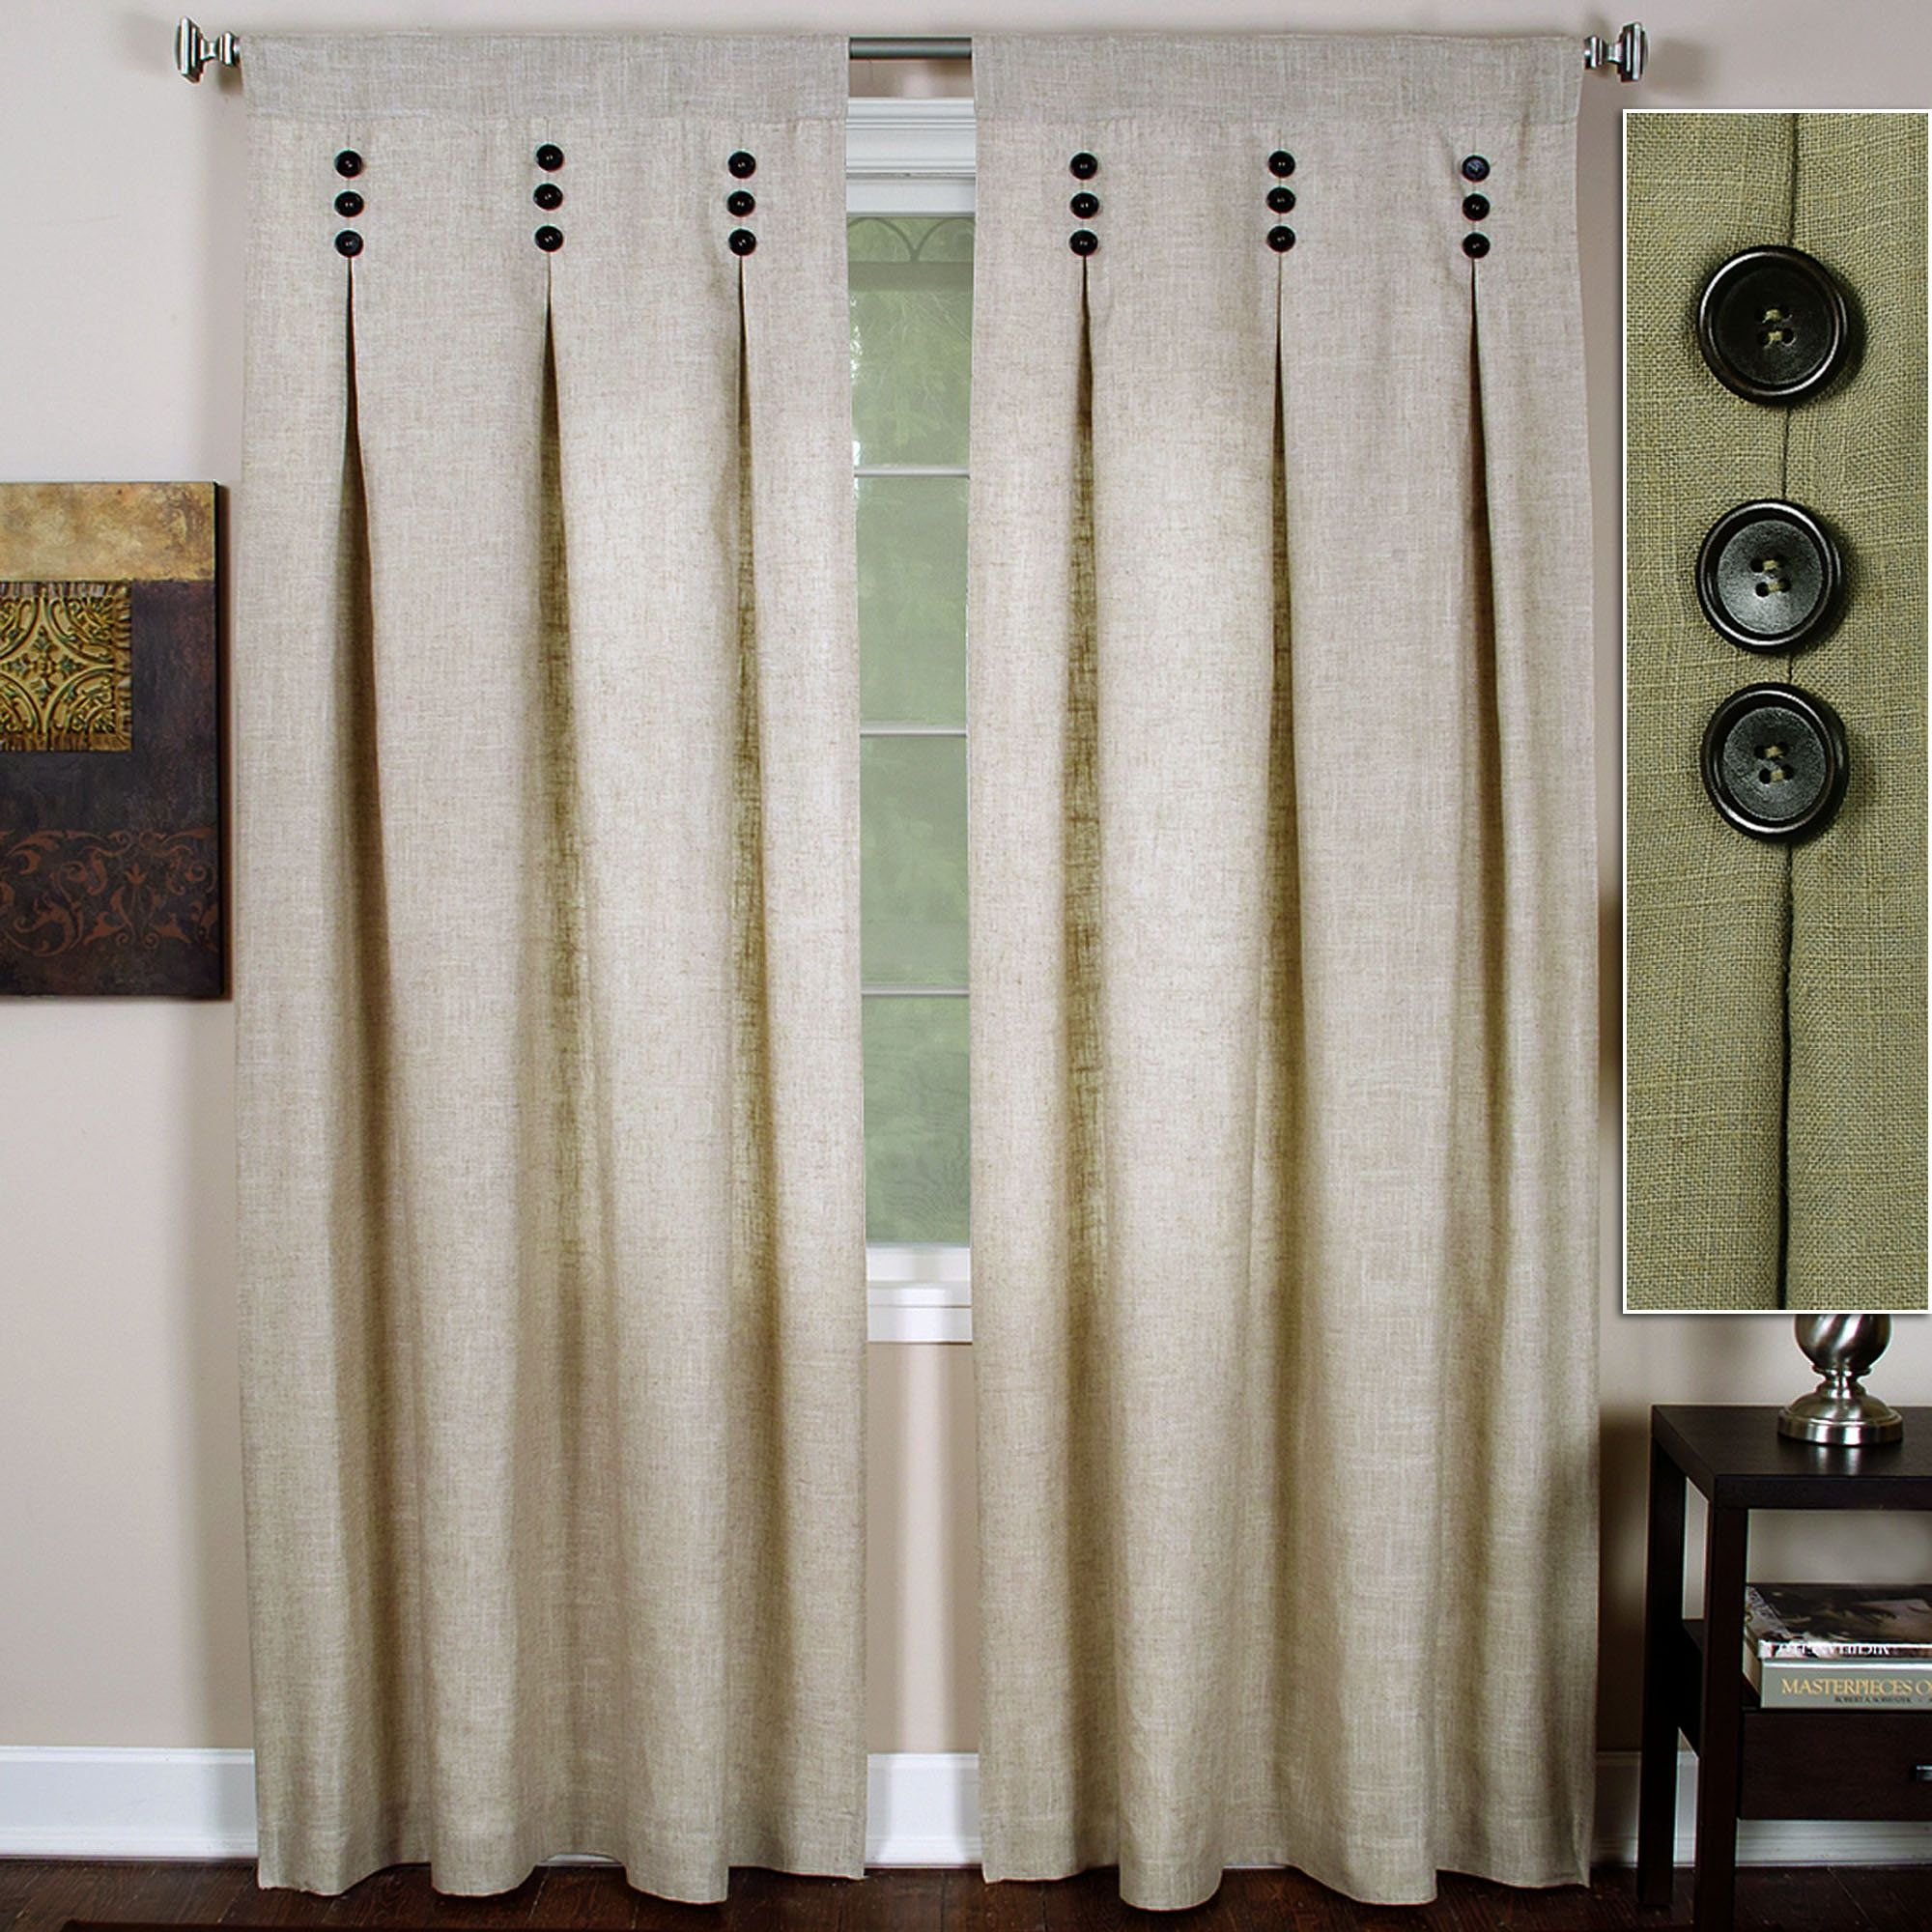 Valance Curtain Styles Photo Album - Curtain Images Inspirations